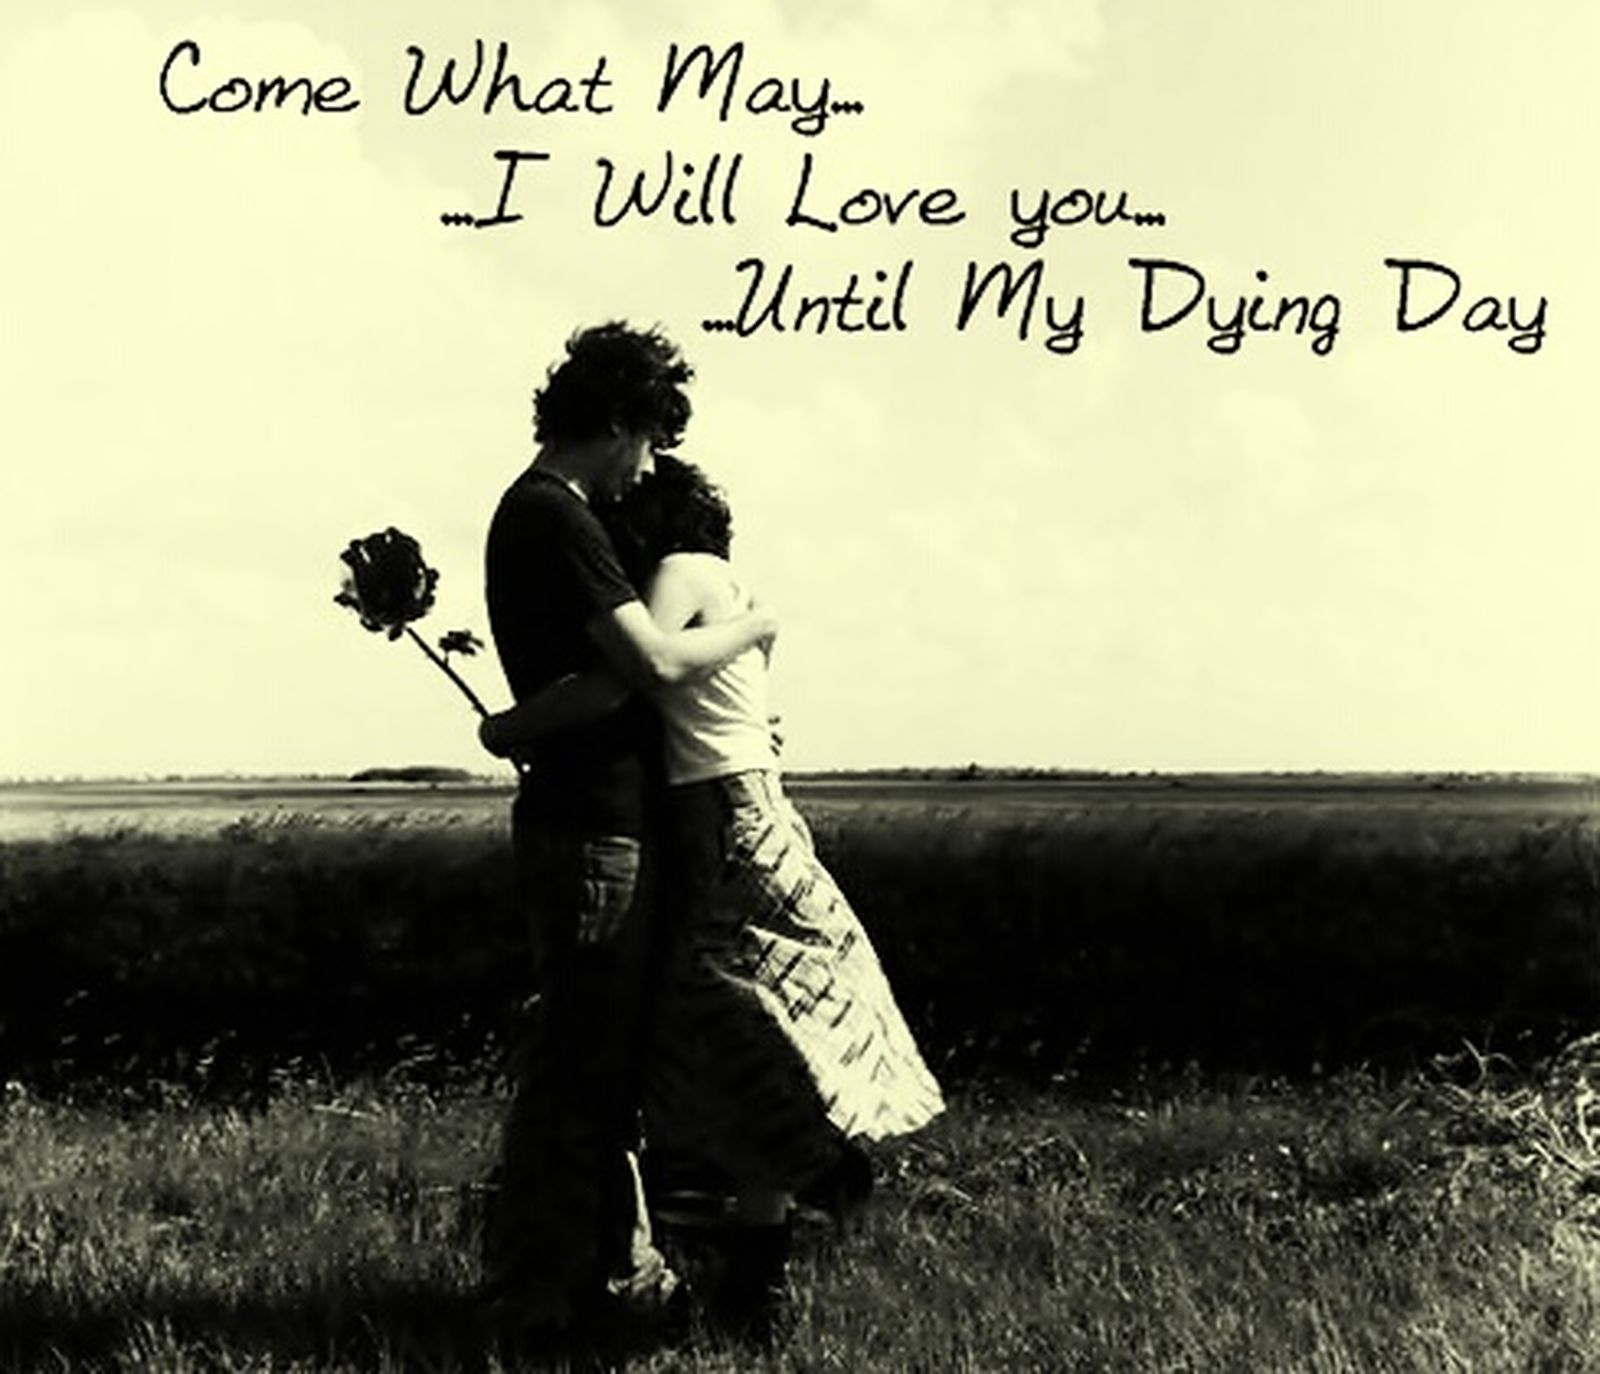 Hug Me I'm Broken... My Life Feelings I'm Lonely You Complete Me ❤ Hurt Tired Waiting Along Smiling I Love You ! Friend